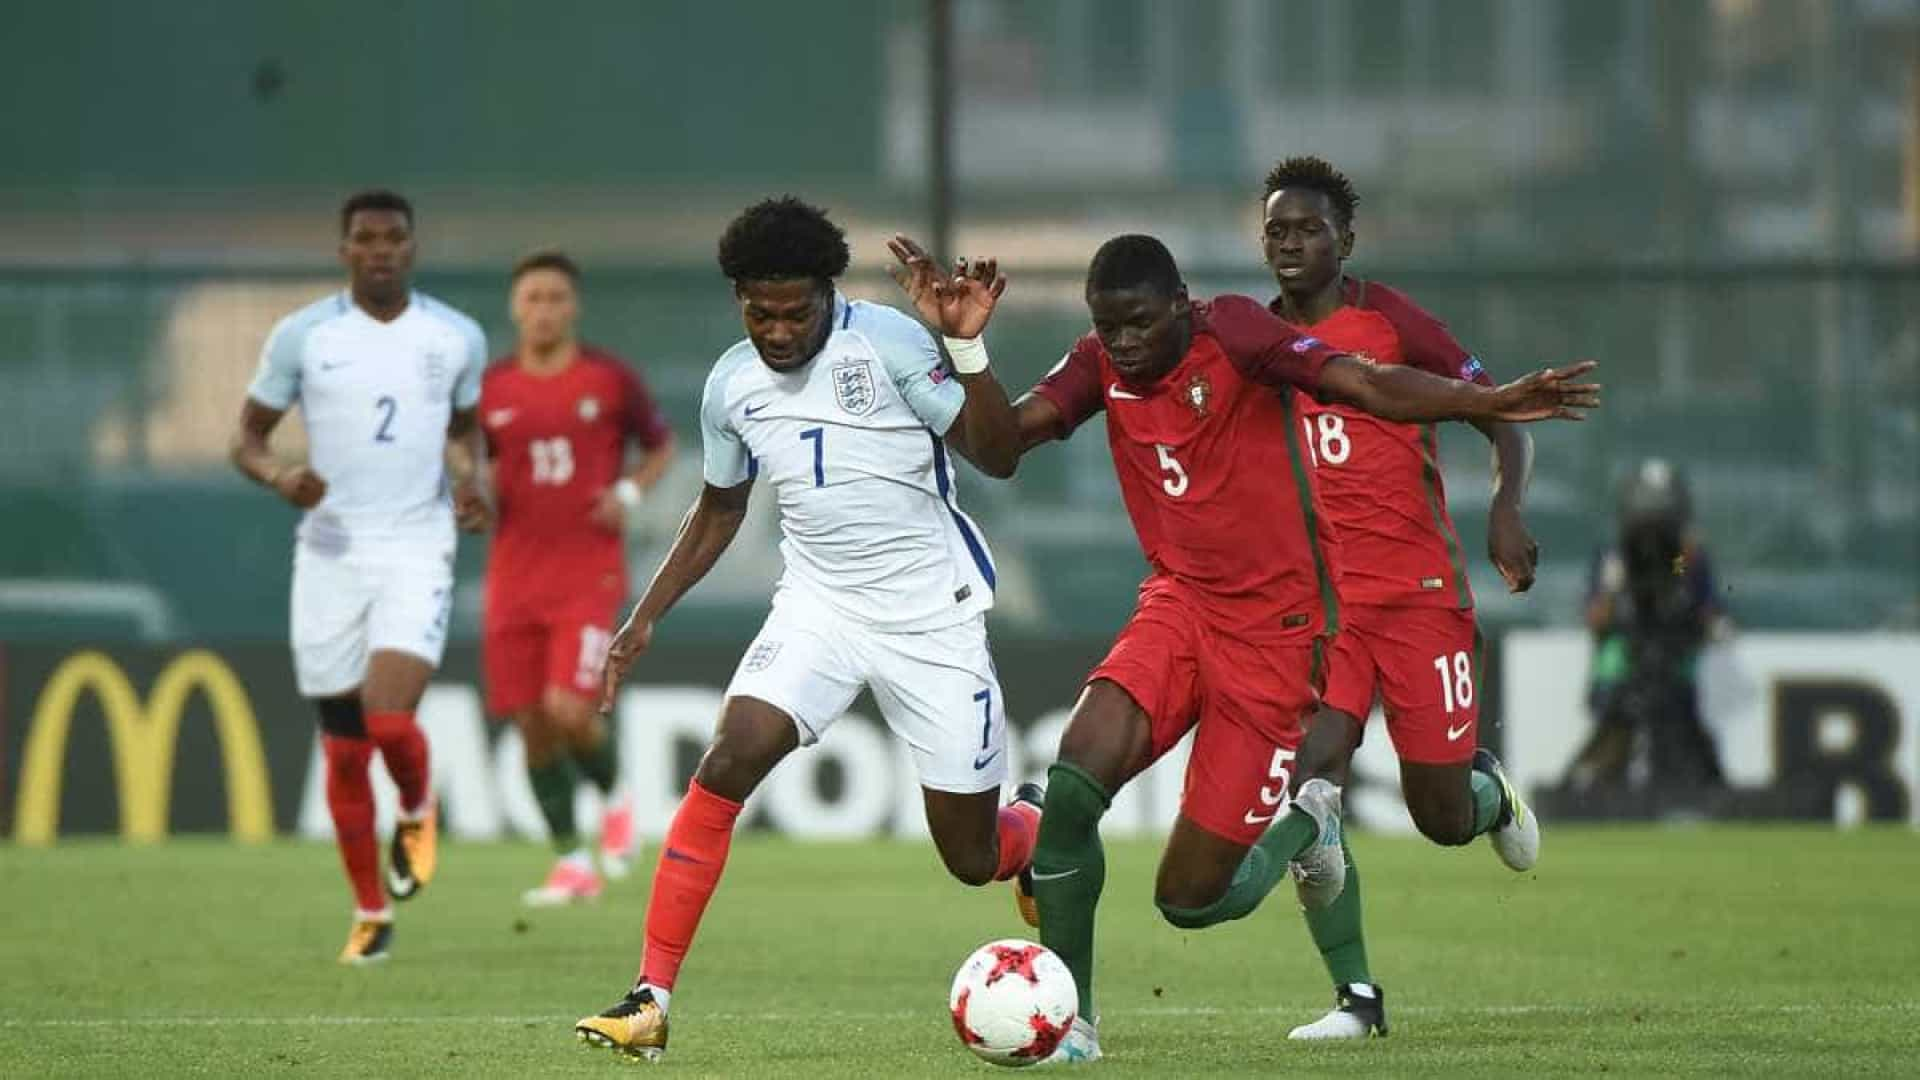 Sub-19: Portugal joga final do Europeu neste sábado